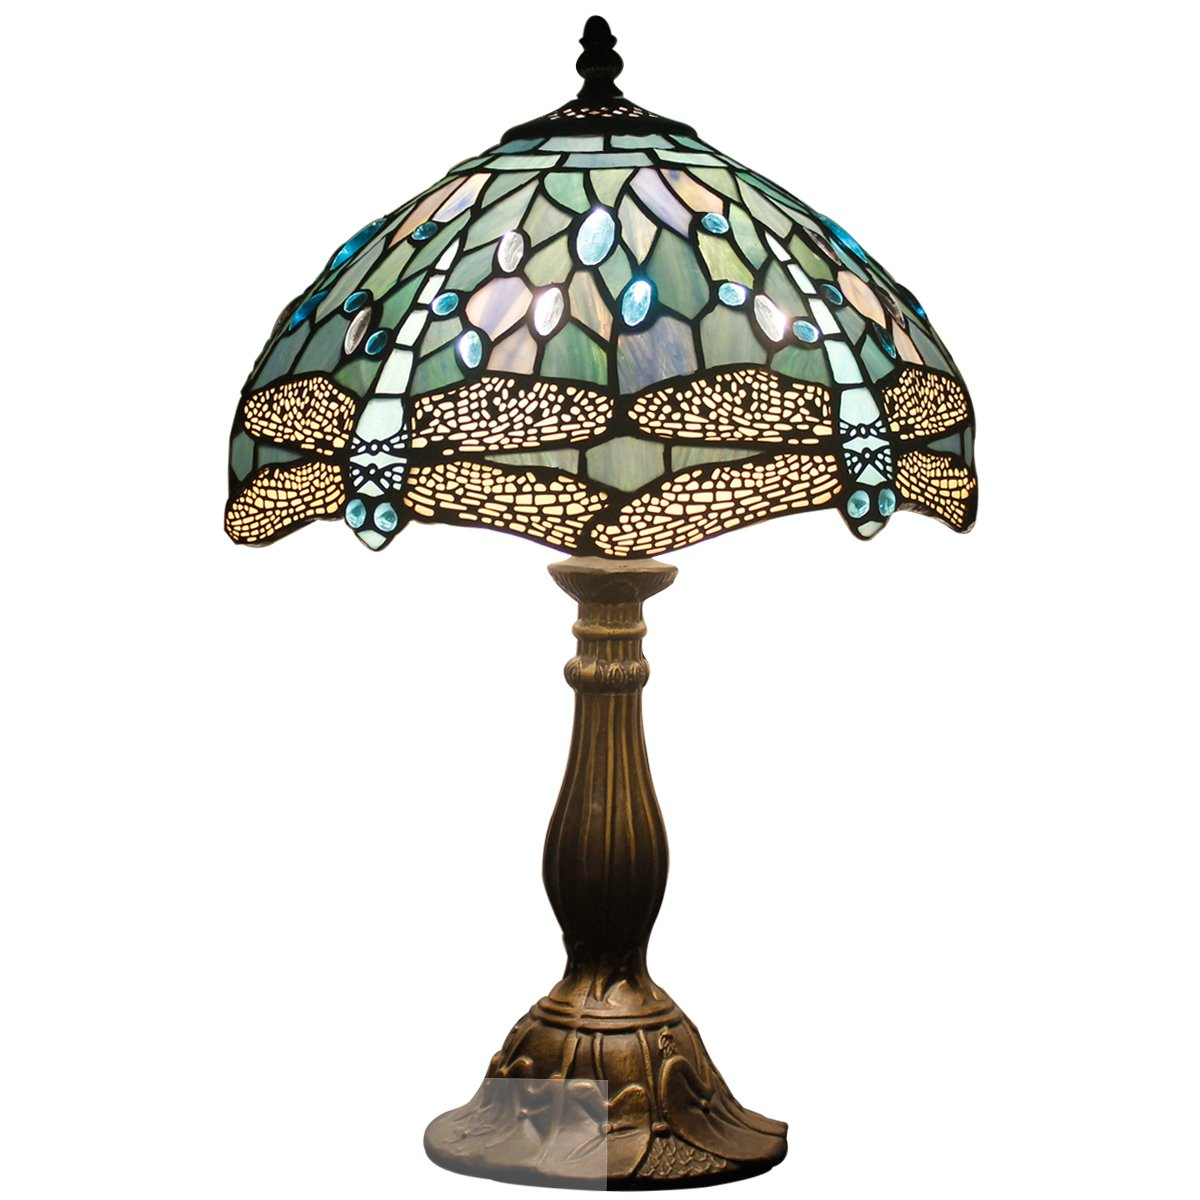 Tiffany Lamp With Sea Blue Stained Glass and Crystal Bead Dragonfly Table Lamp In Height 18 Inch For Living Room